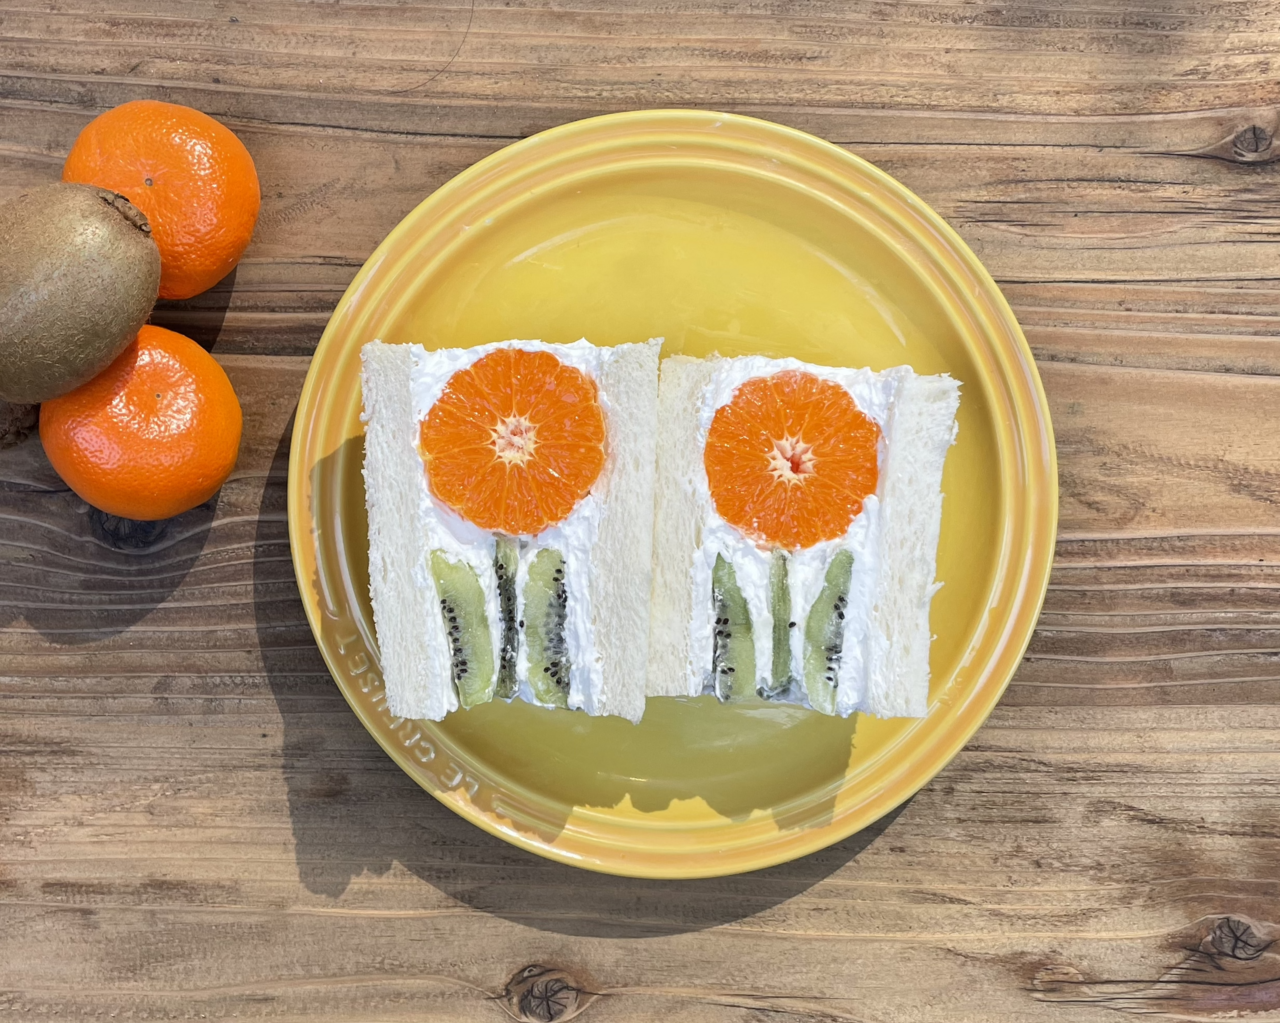 This fruit-filled sandwich hides a pretty flower inside.